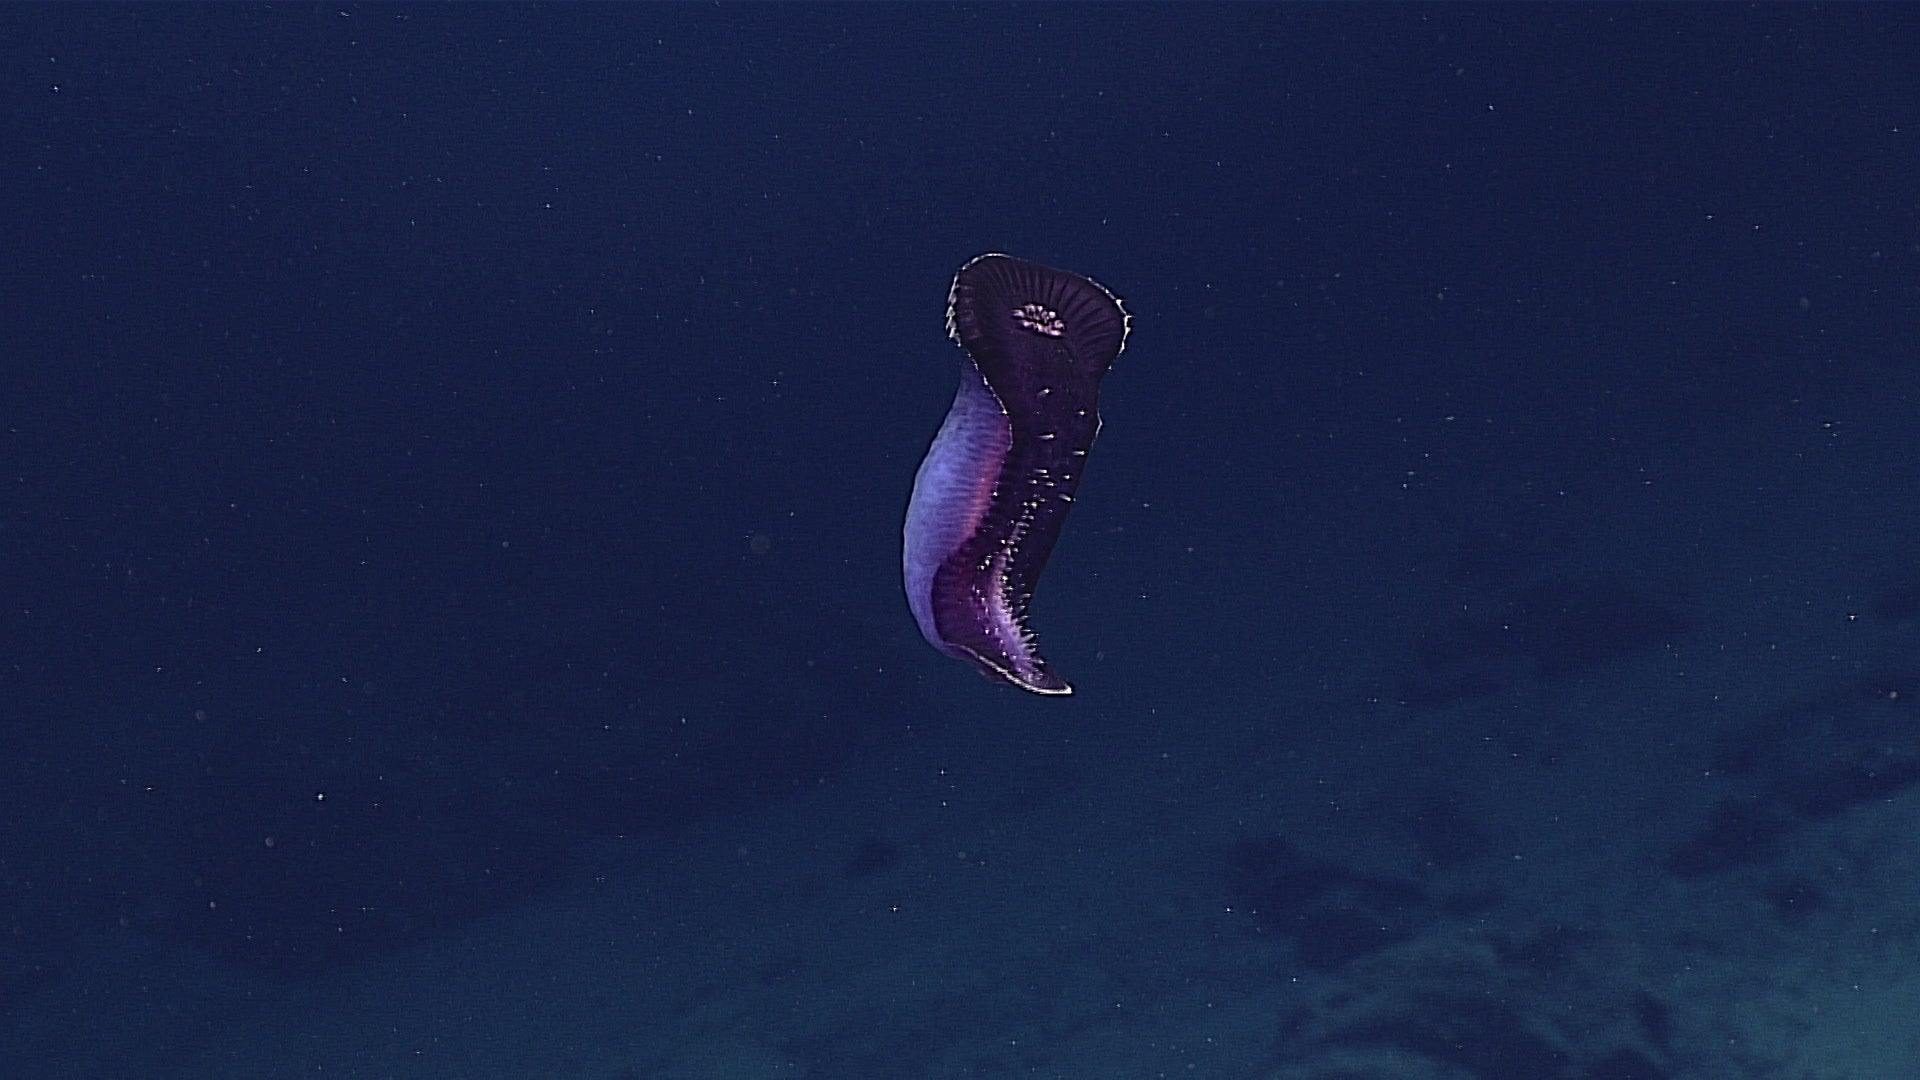 Check Out the Seriously Gnarly Creatures Discovered at the Bottom of the Mariana Trench